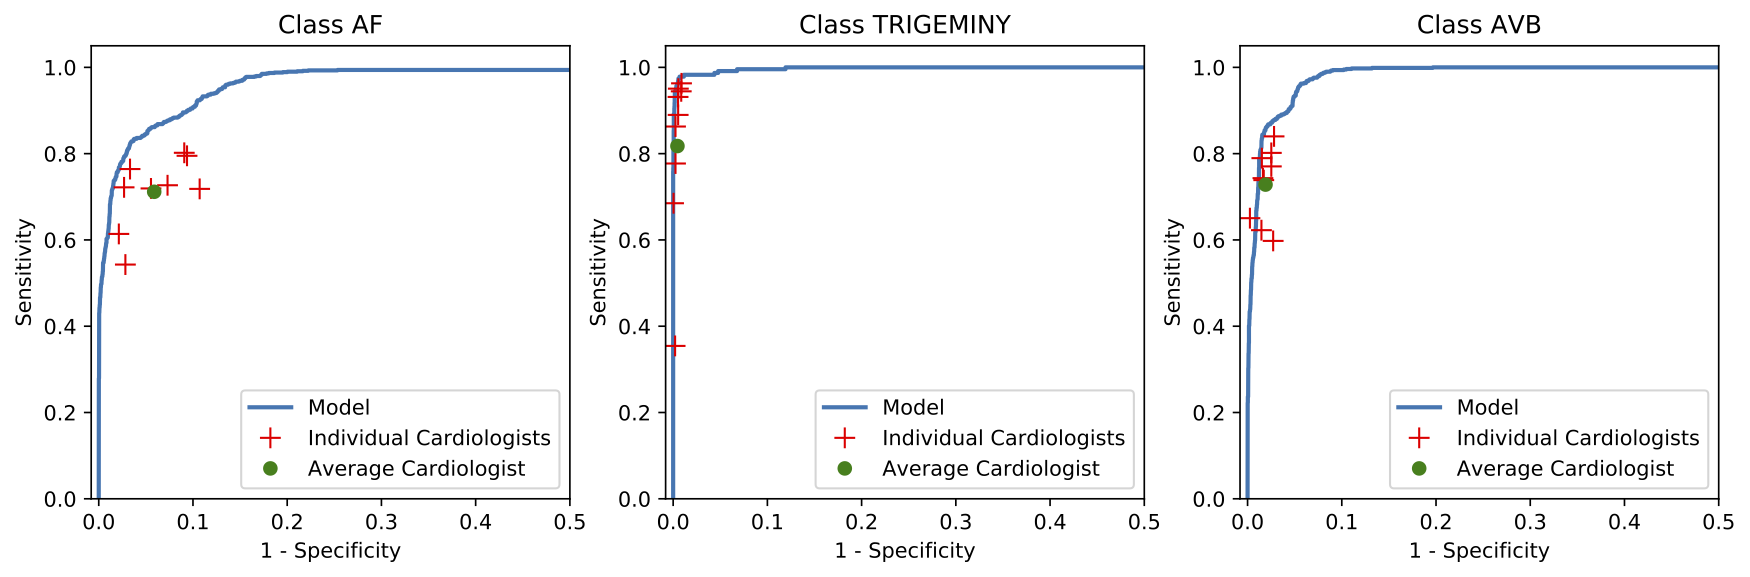 Cardiologist-level arrhythmia detection and classification